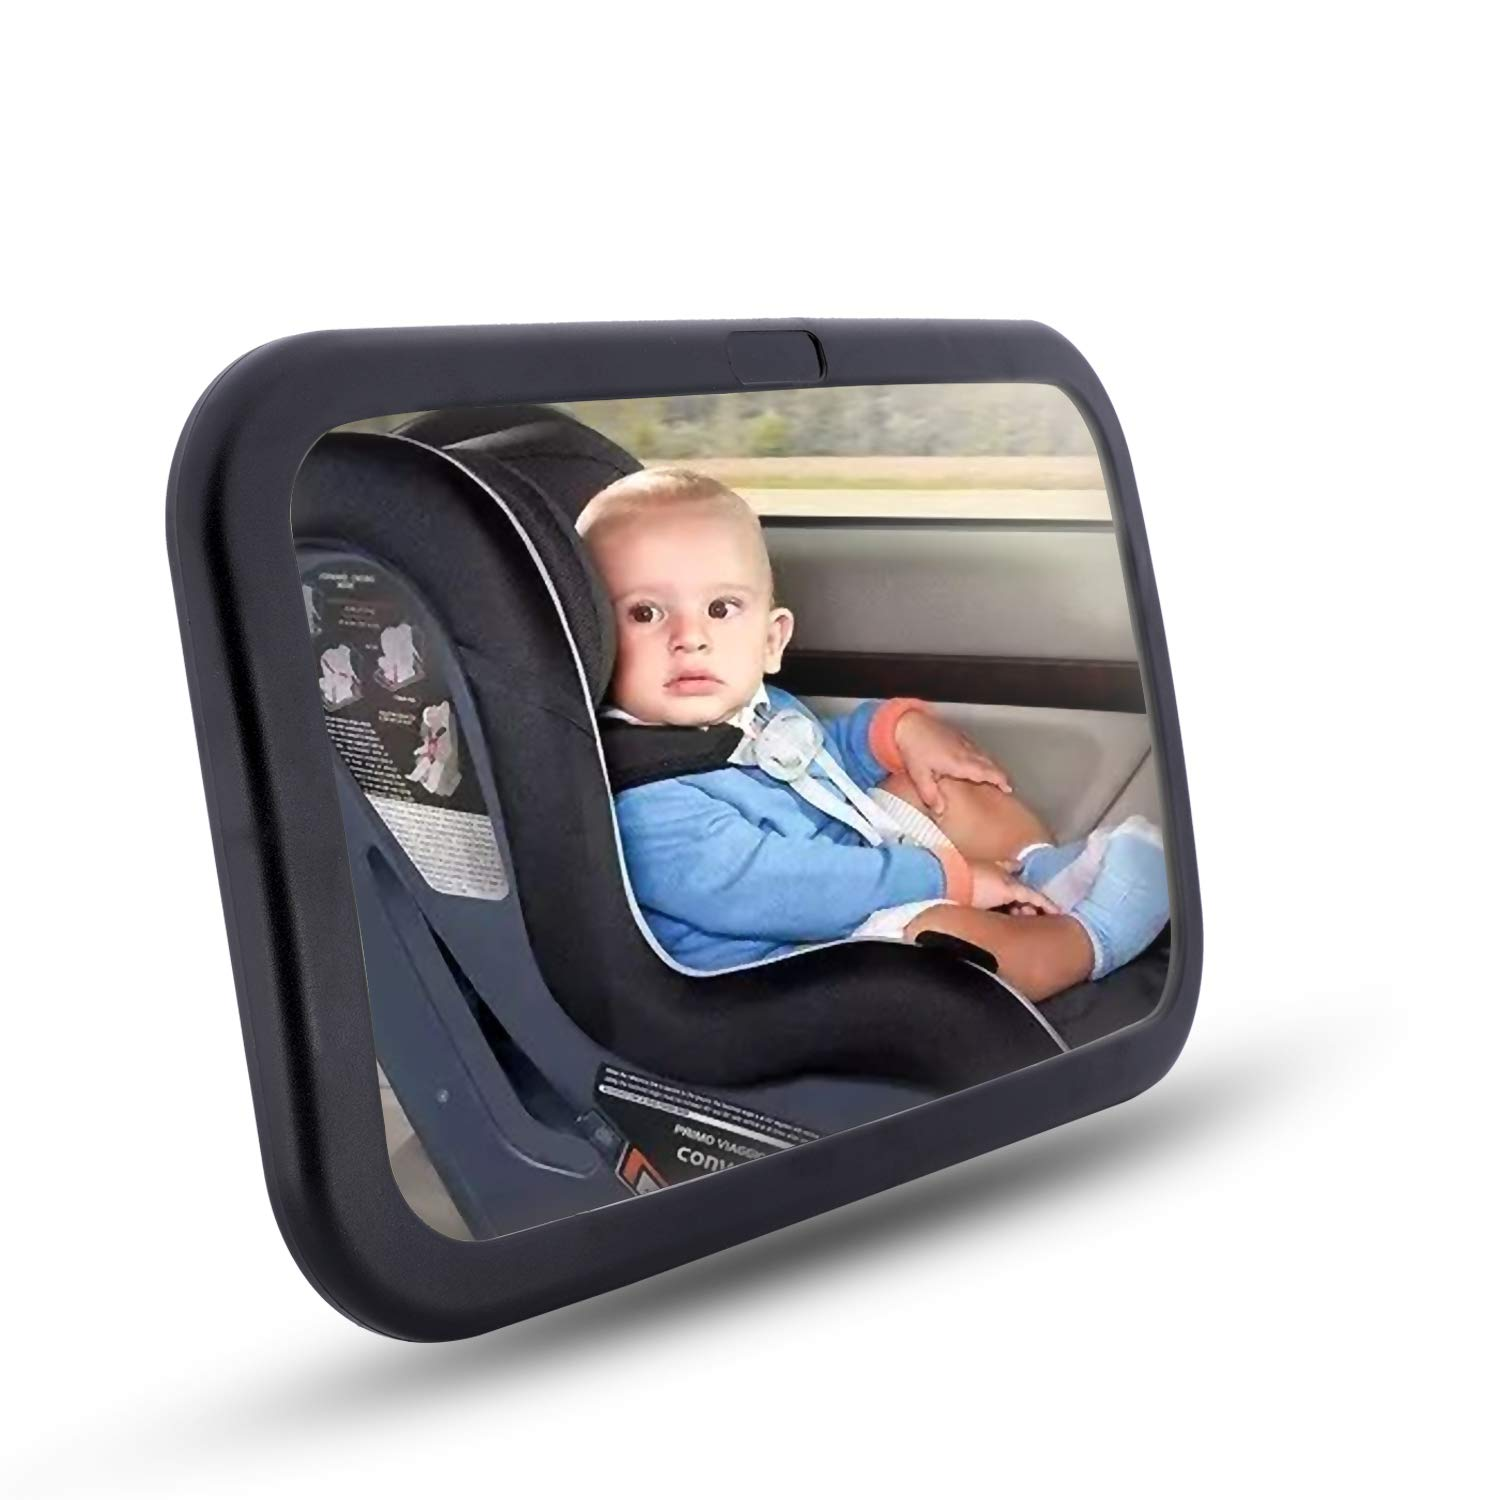 LYOOMALL Baby Car Mirror for Car Seat Rear Facing Shatter-Proof Acrylic with Clear View 360 Degree Adjustable